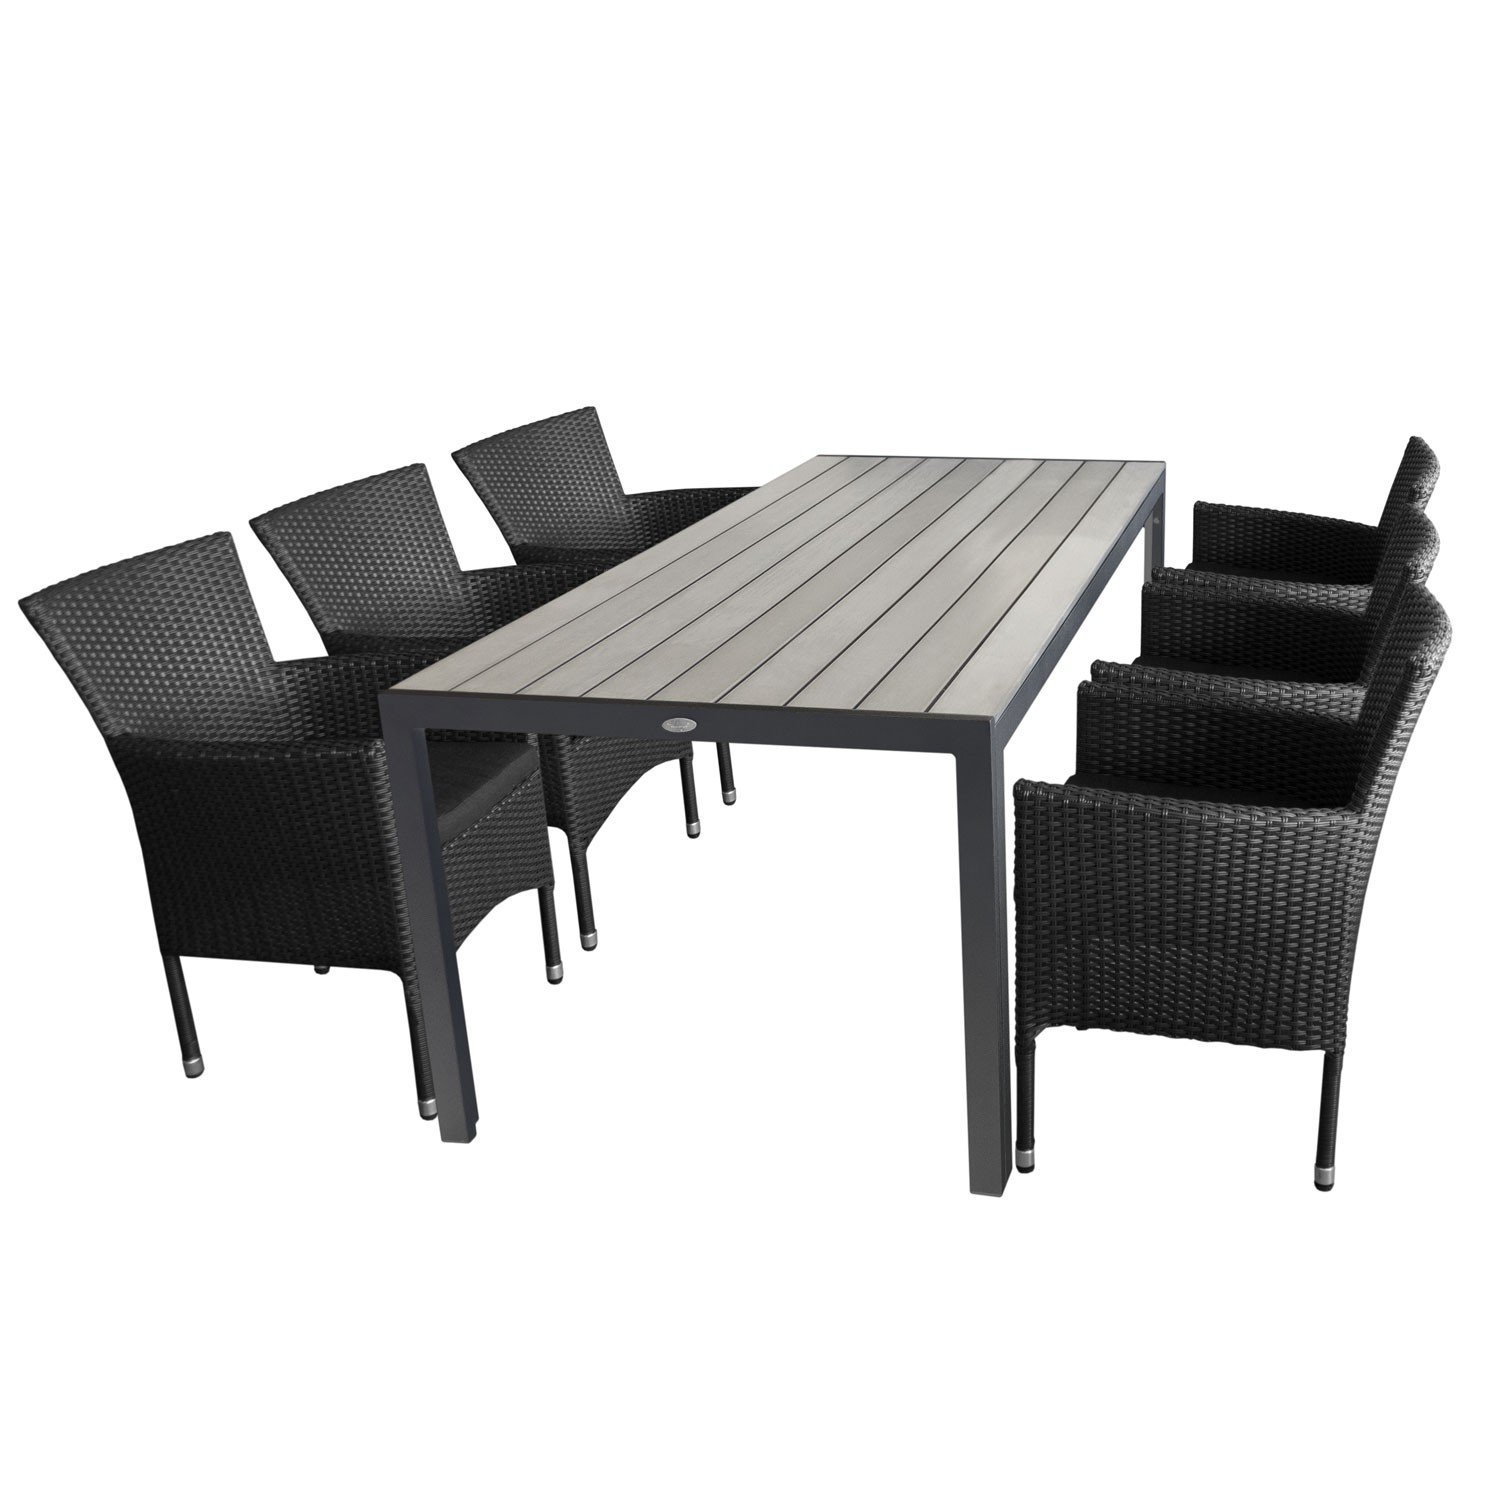 7tlg gartengarnitur aluminium gartentisch tischplatte polywood grau 205x90cm 6x. Black Bedroom Furniture Sets. Home Design Ideas